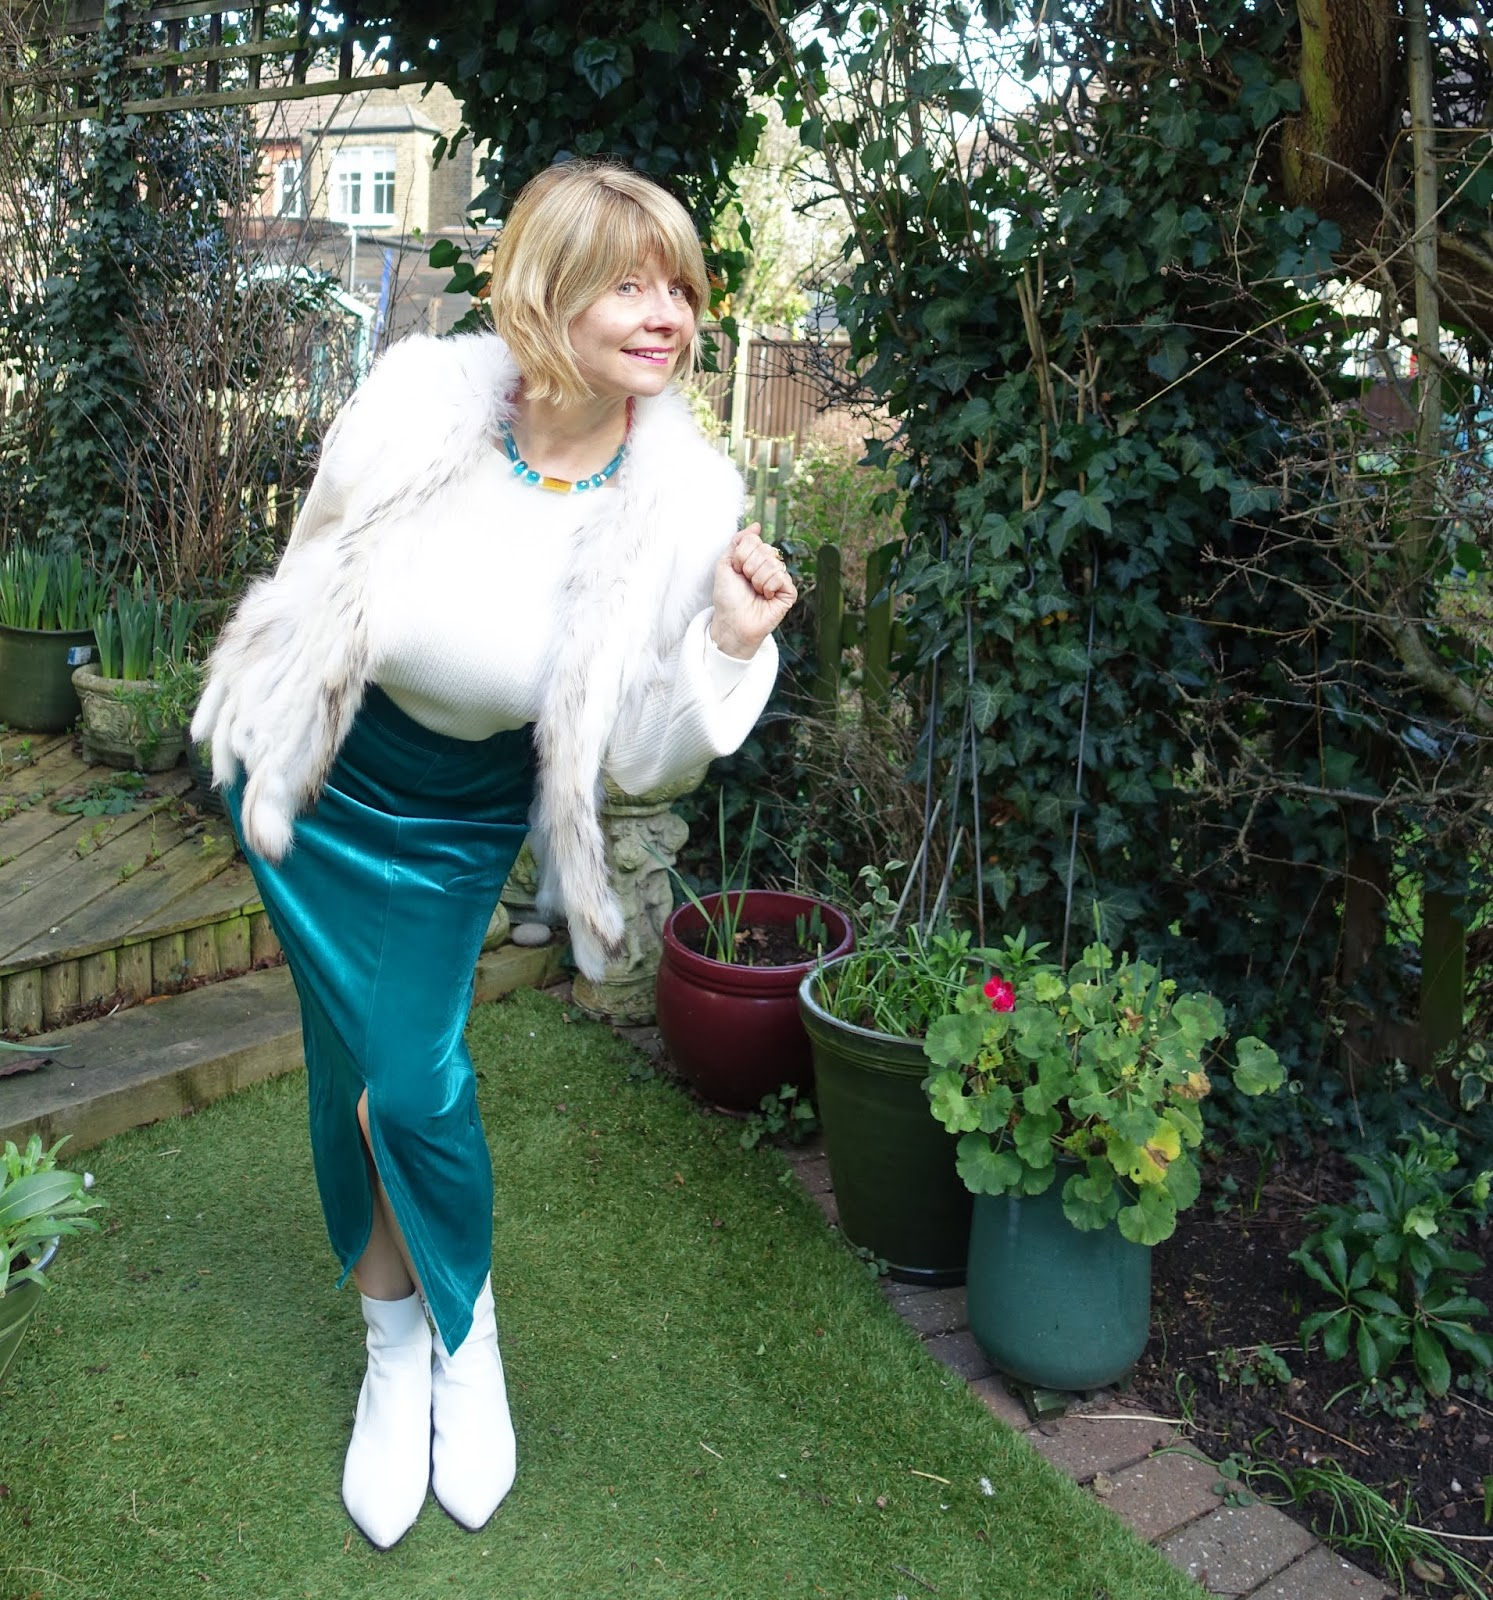 Flattering for all sizes the Zandra skirt from Kettlewell in Atlantis worn with white fur gilet and sweater by over-50s blogger Gail Hanlon